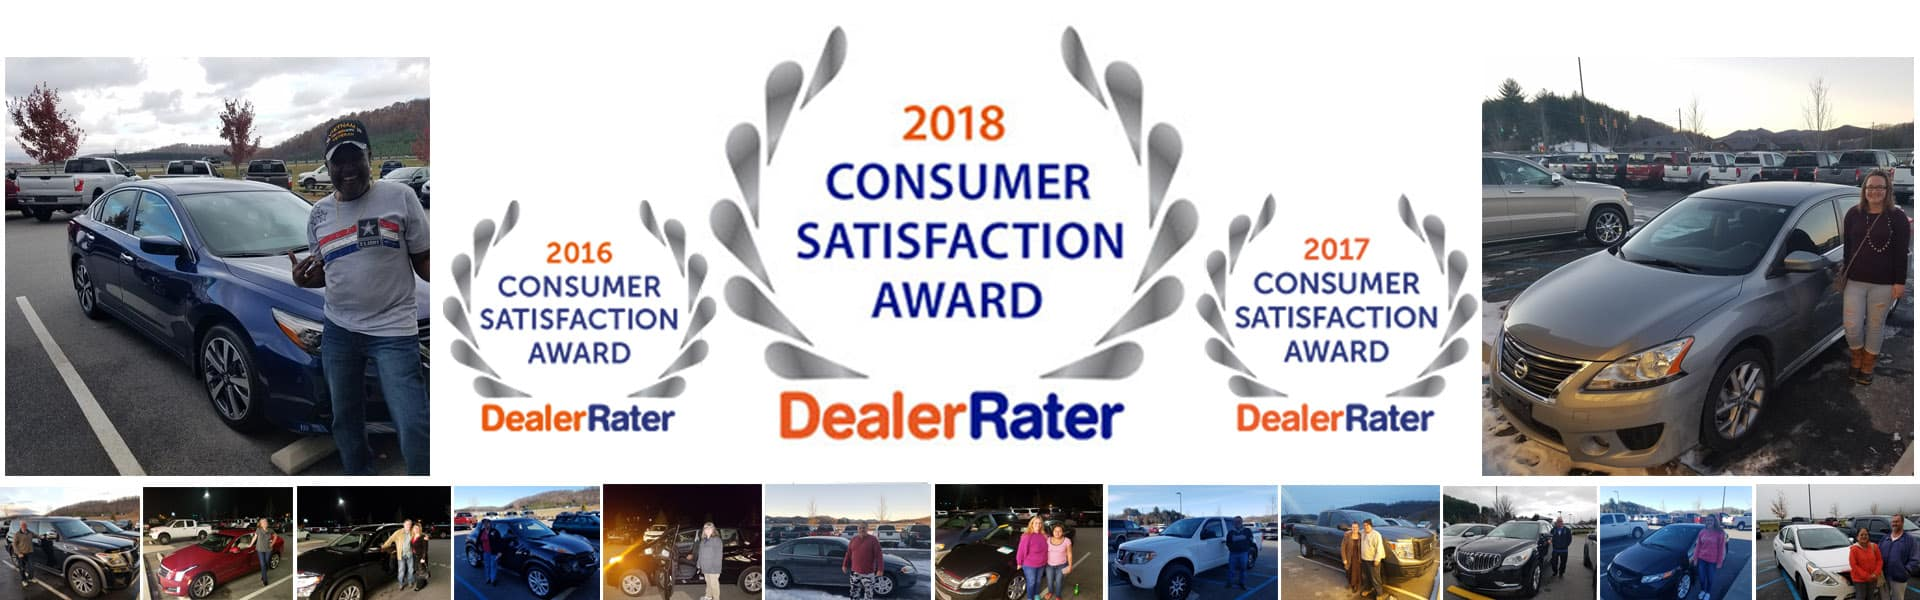 beyond satisfaction year excellence guelph after best s commercial vehicles the of and for dealer nissan essence that about us is formula our compare